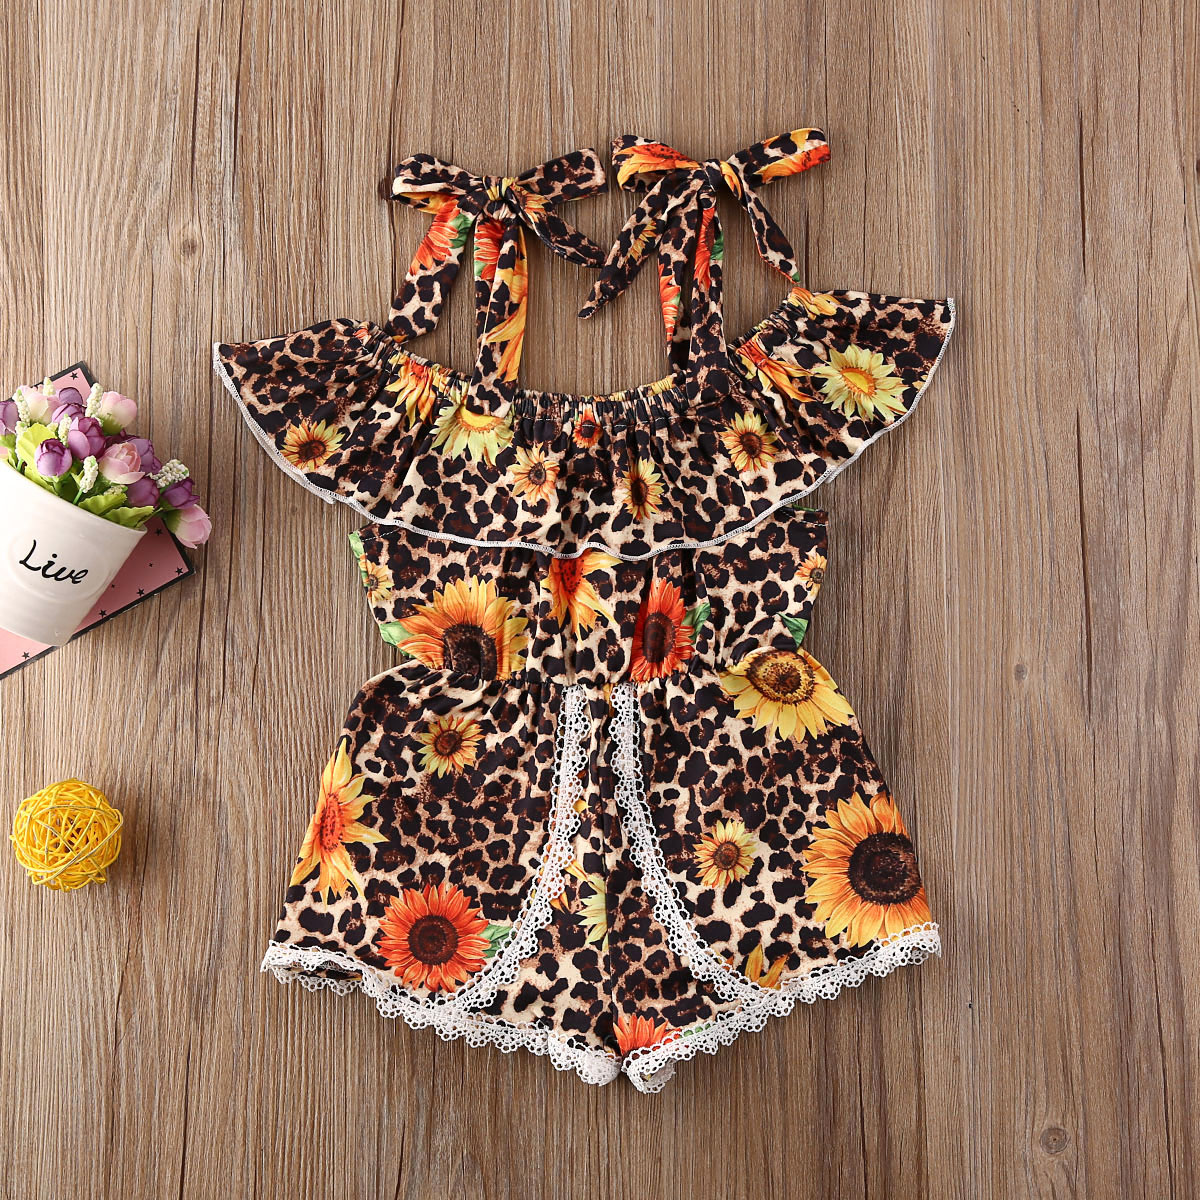 Pudcoco Toddler Baby Girl Clothes Leopard Sunflower Print Off Shoulder Strap Romper Jumpsuit One-Piece Outfit Cotton Clothes